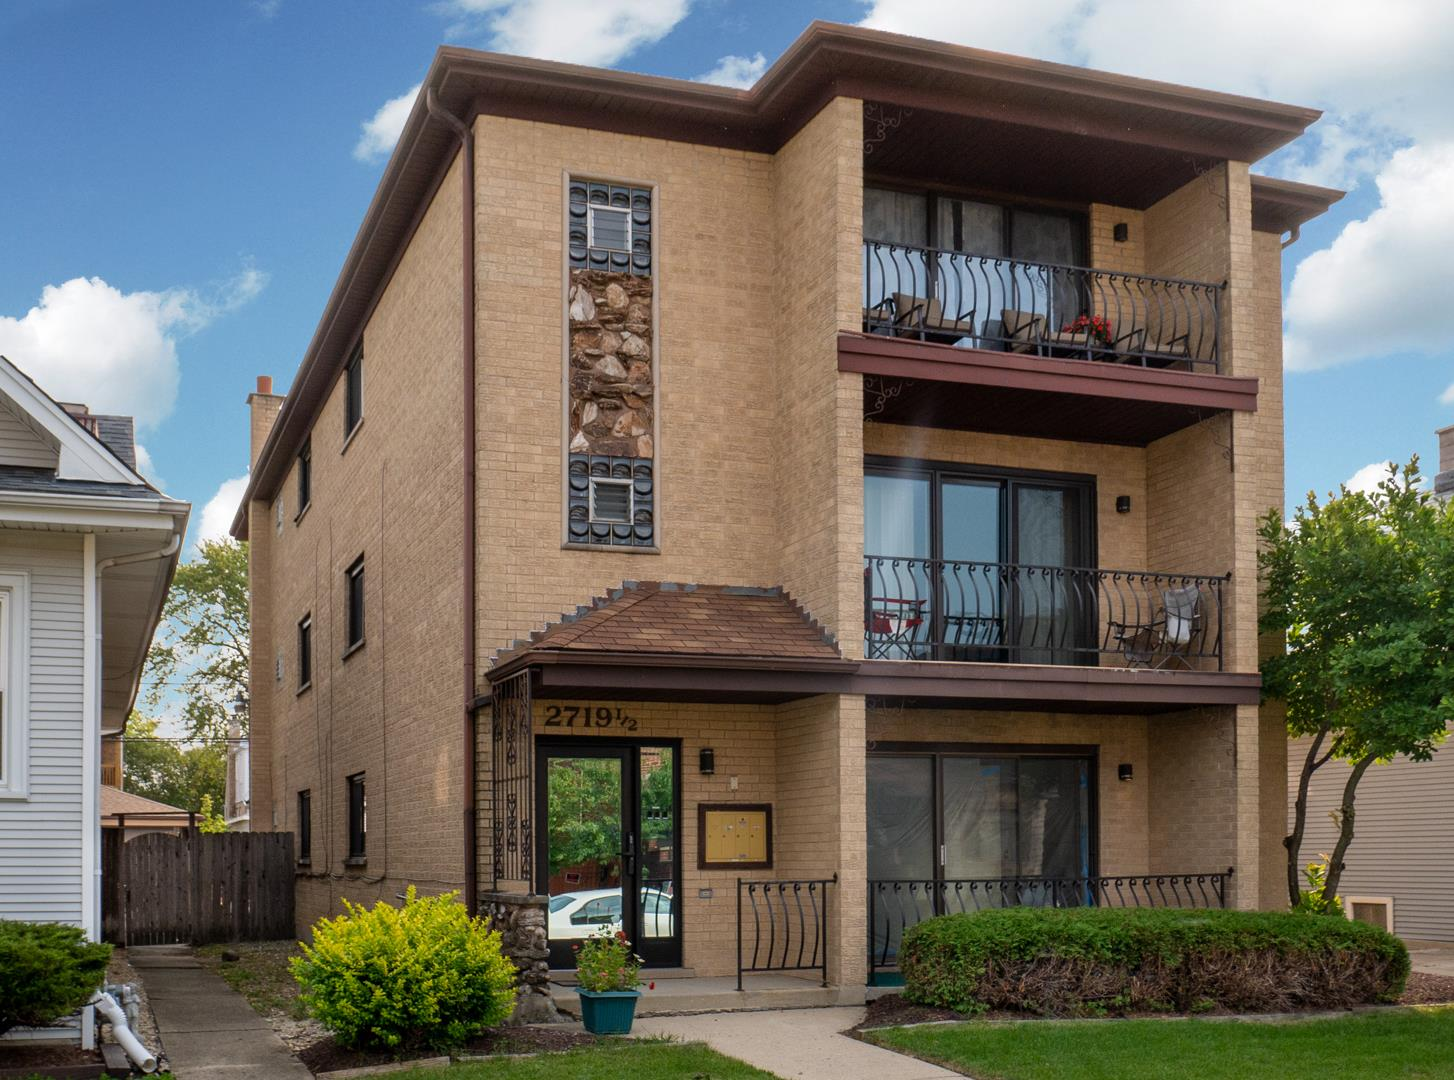 2719 1\/2 N 74th Avenue #3, Elmwood Park, IL 60707 - #: 10879132